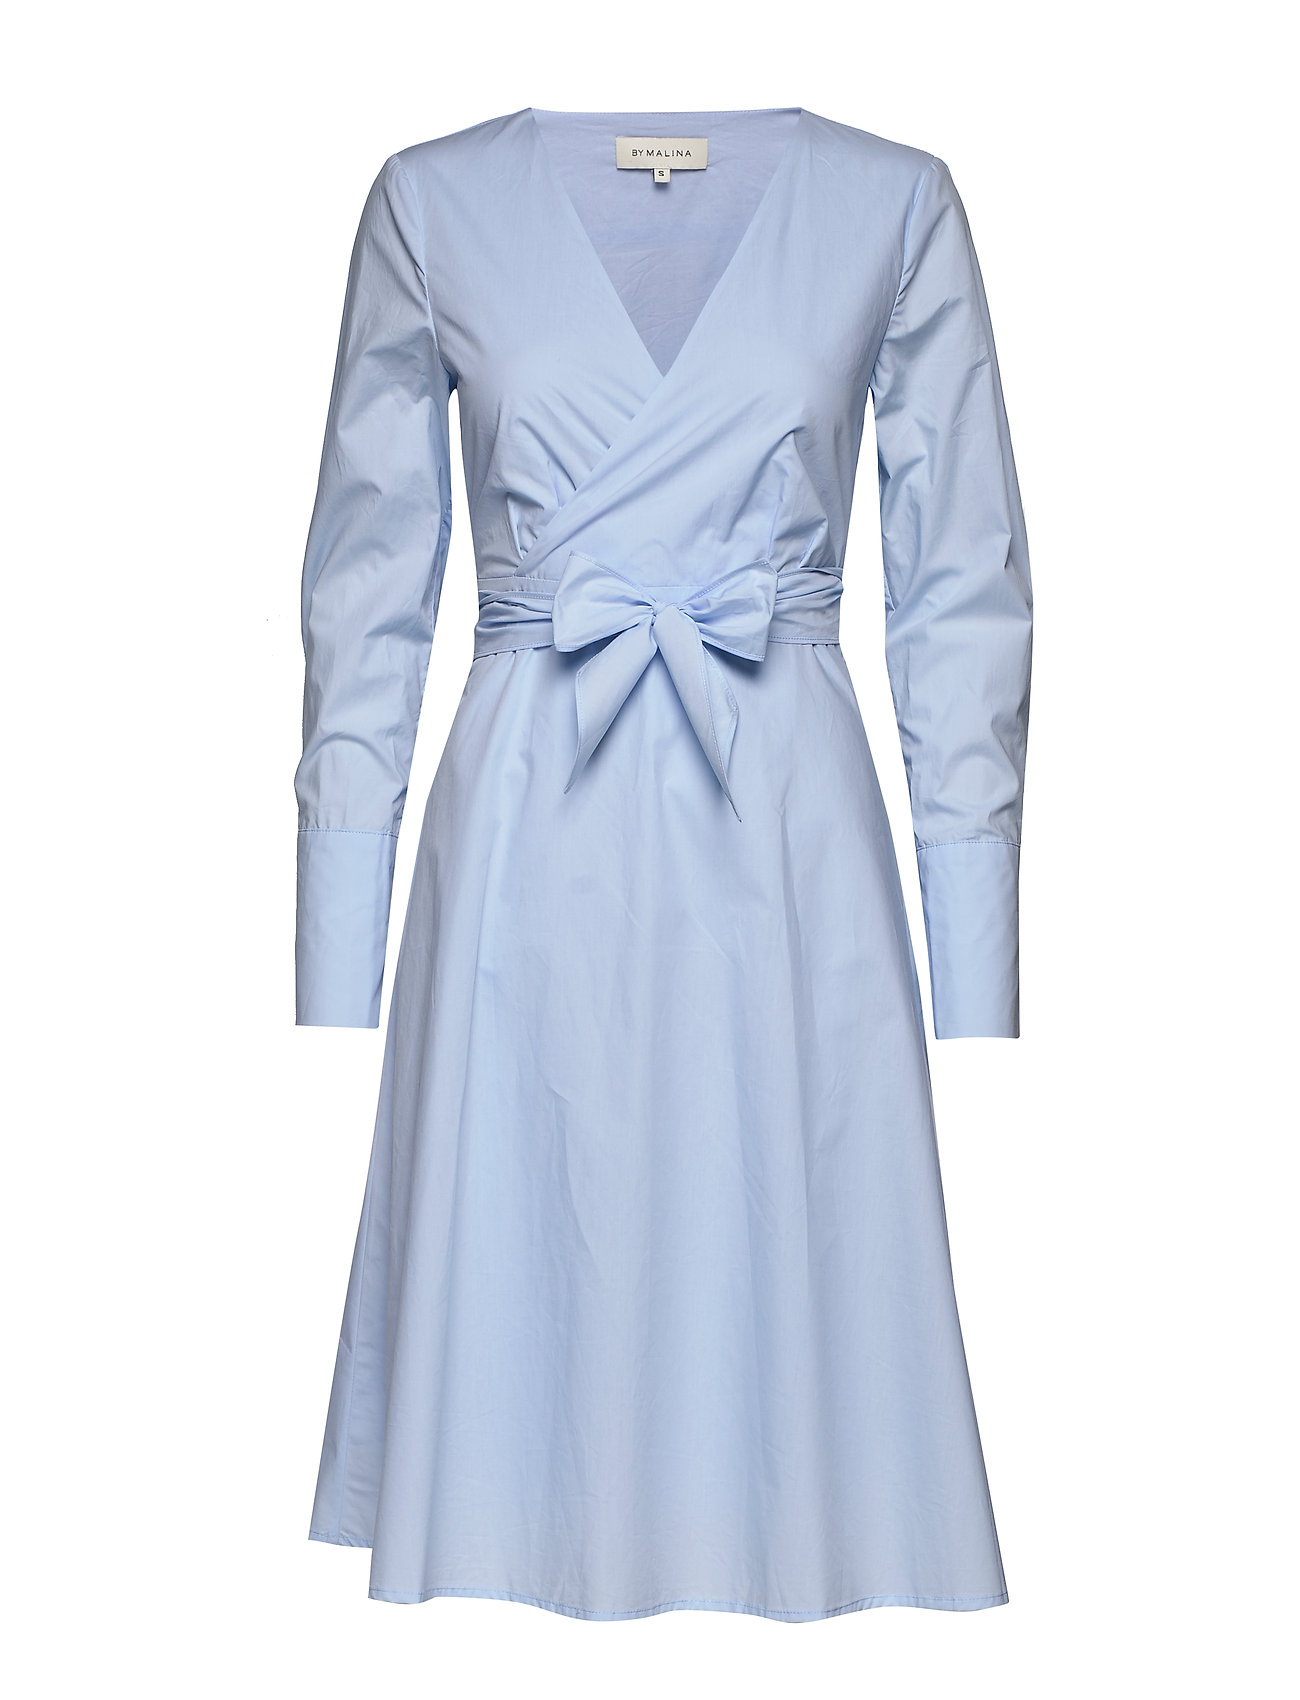 By Malina Nicolene dress - SKY BLUE